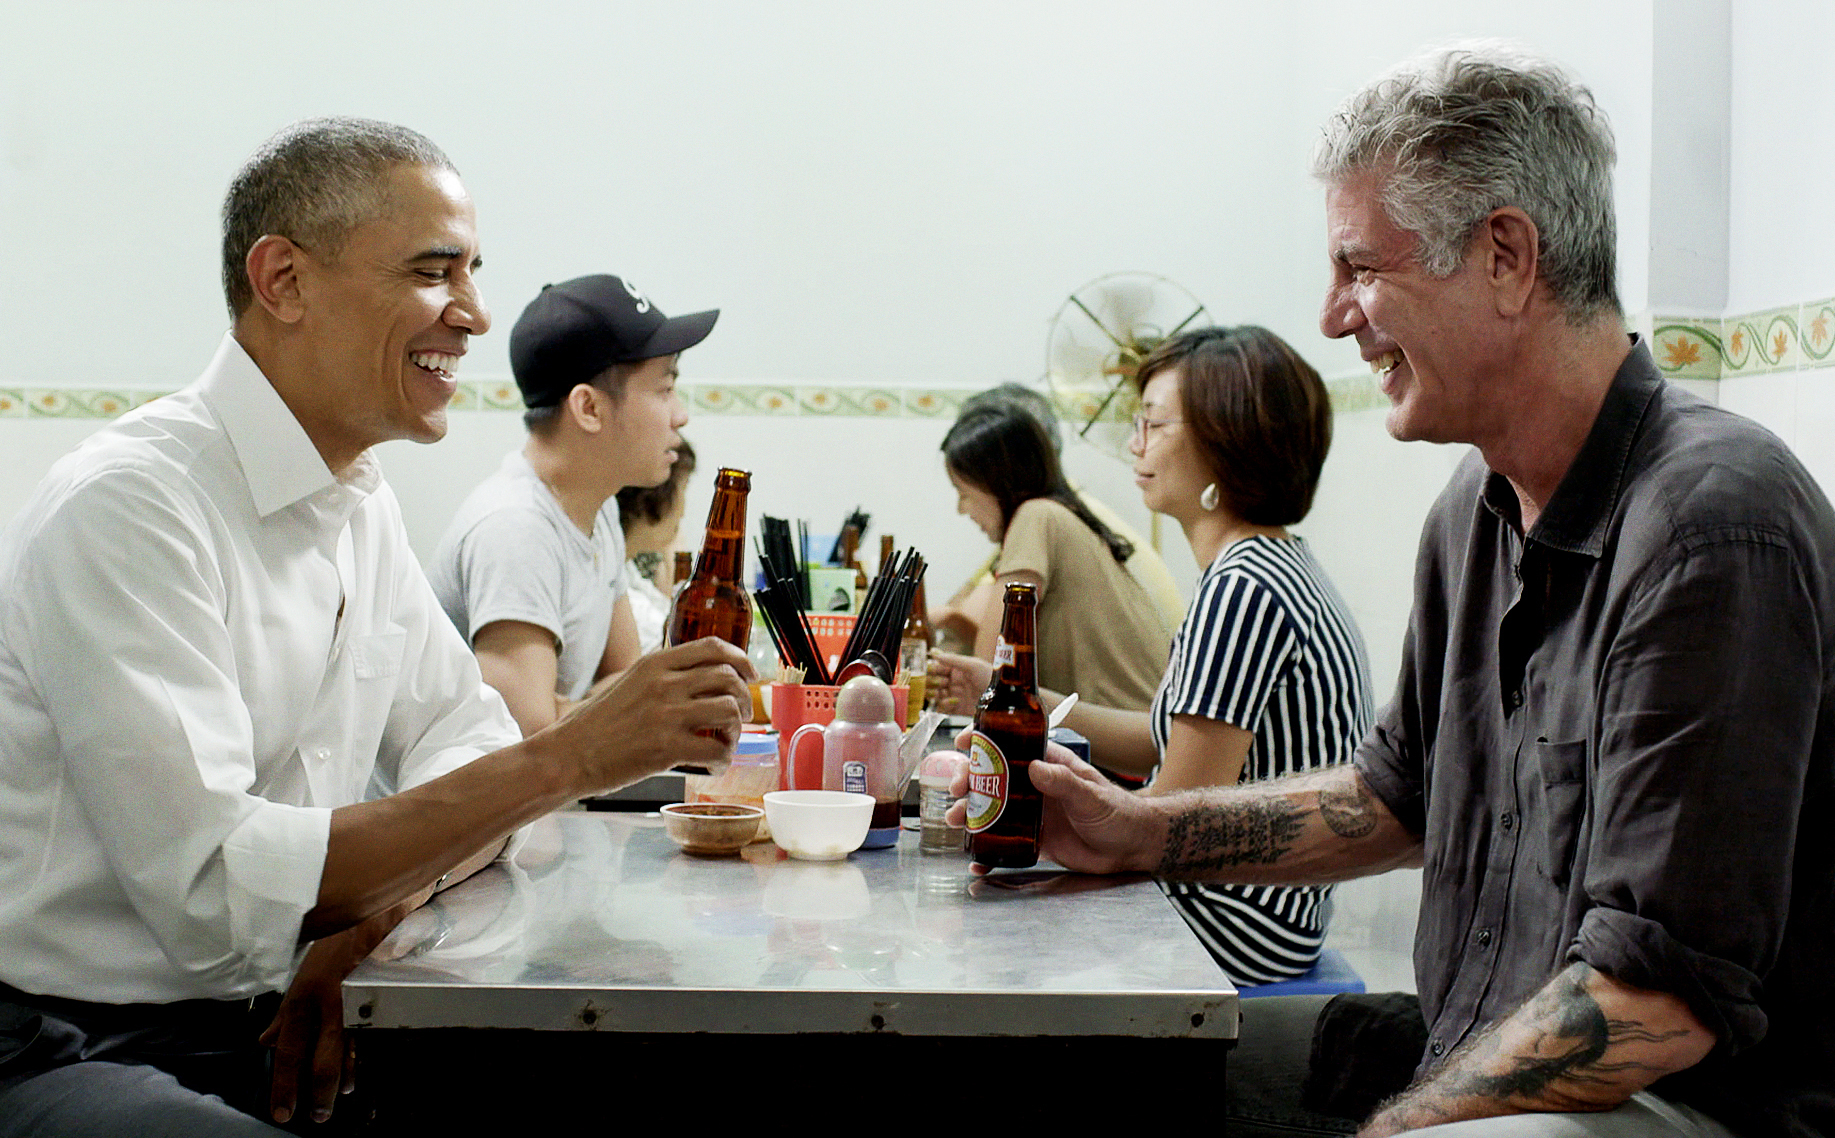 'Anthony Bourdain: Parts Unknown' in Hanoi, Vietnam: Just the One-Liners